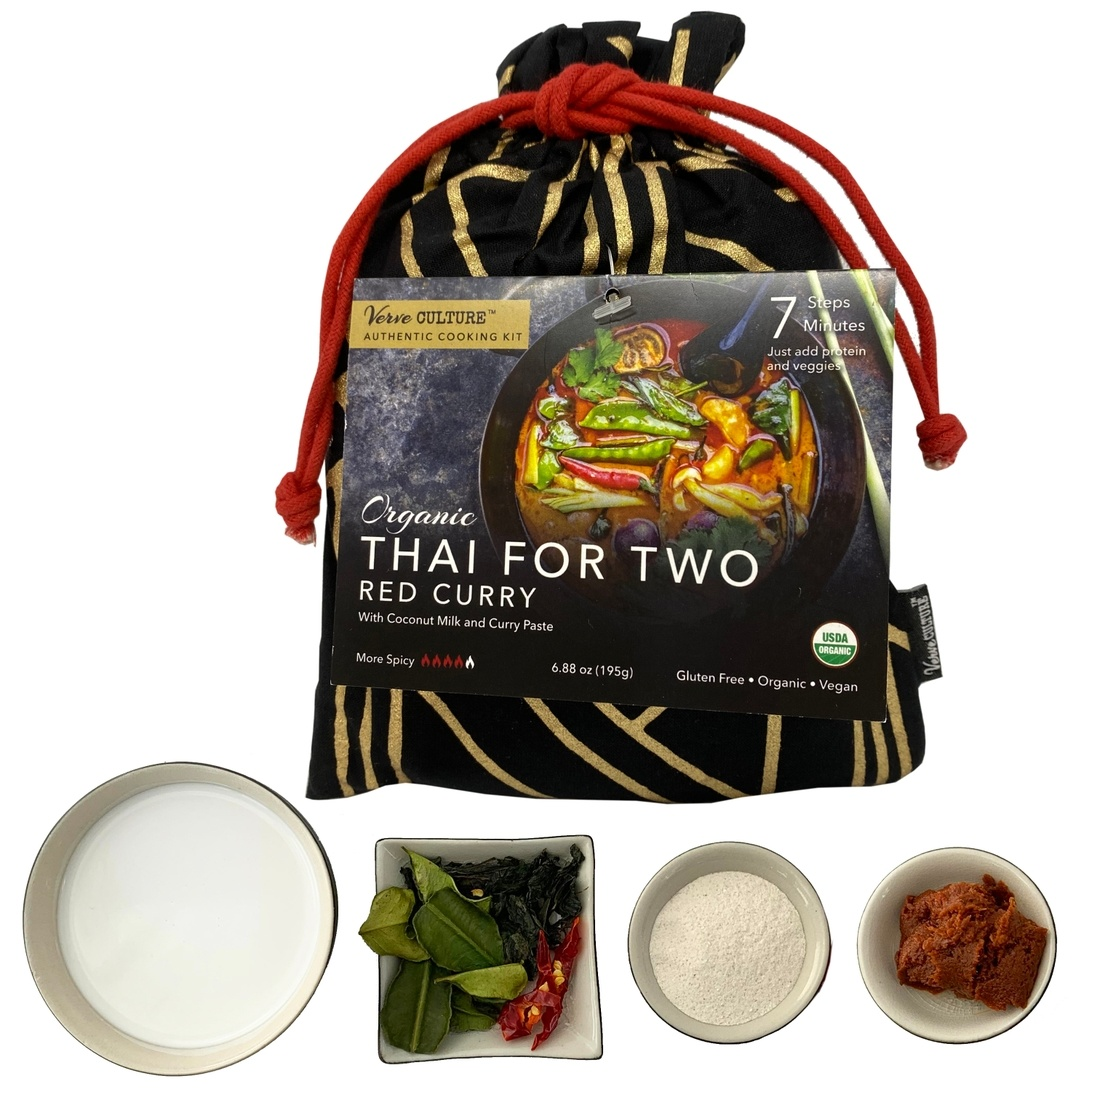 Verve Culture Thai Cooking for Two Cooking Kit - Organic Red Curry